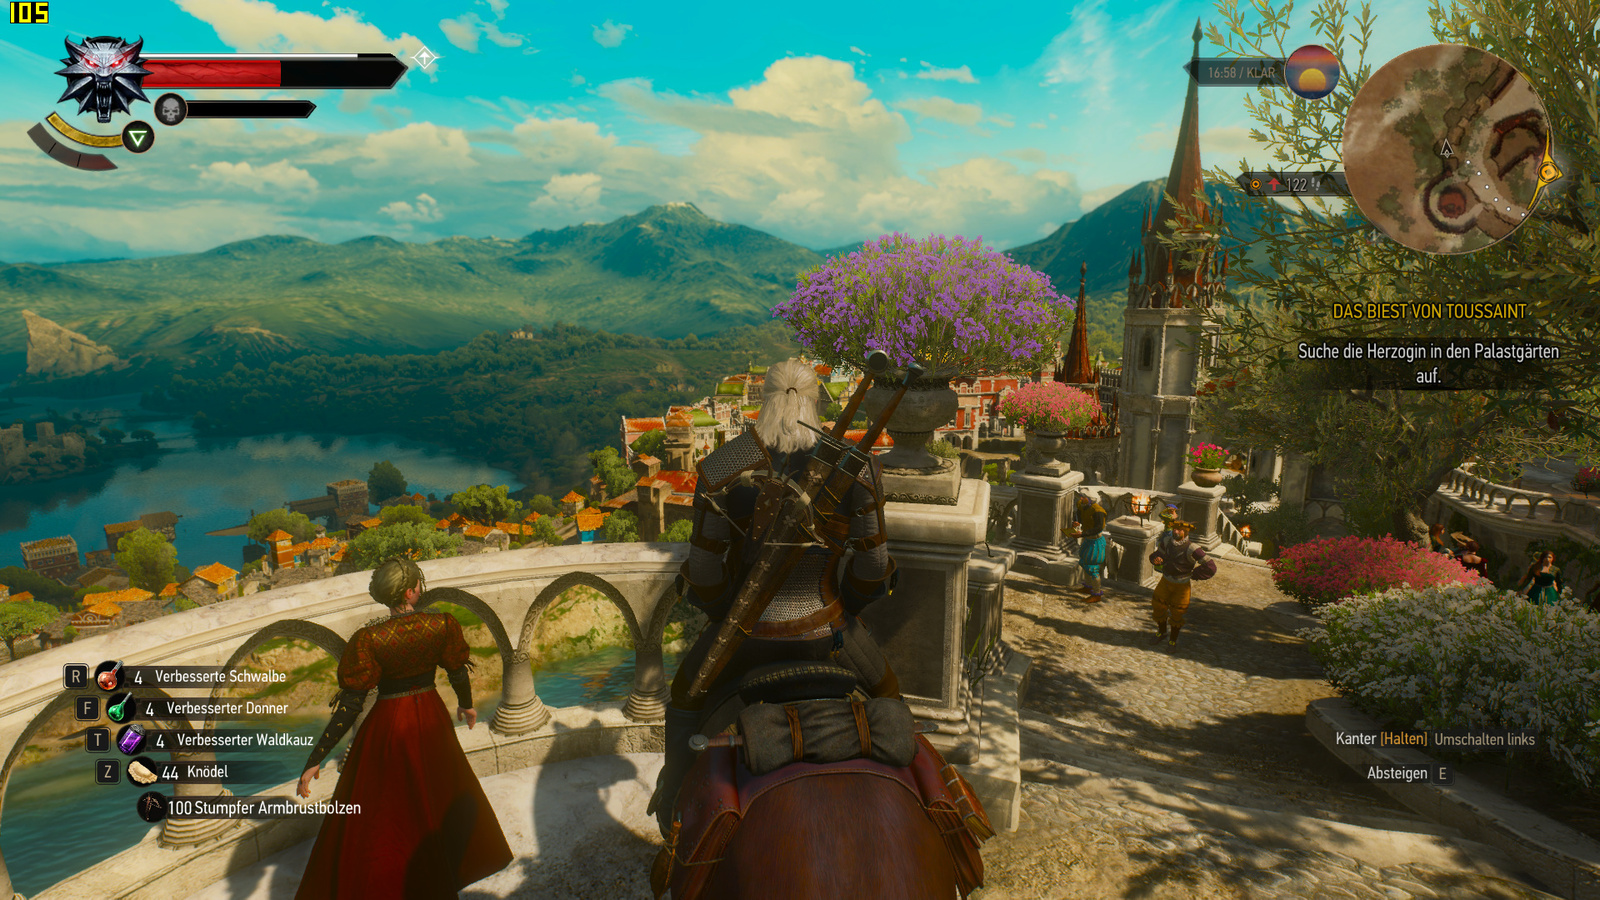 Witcher-3-BundW-16-9-pcgh